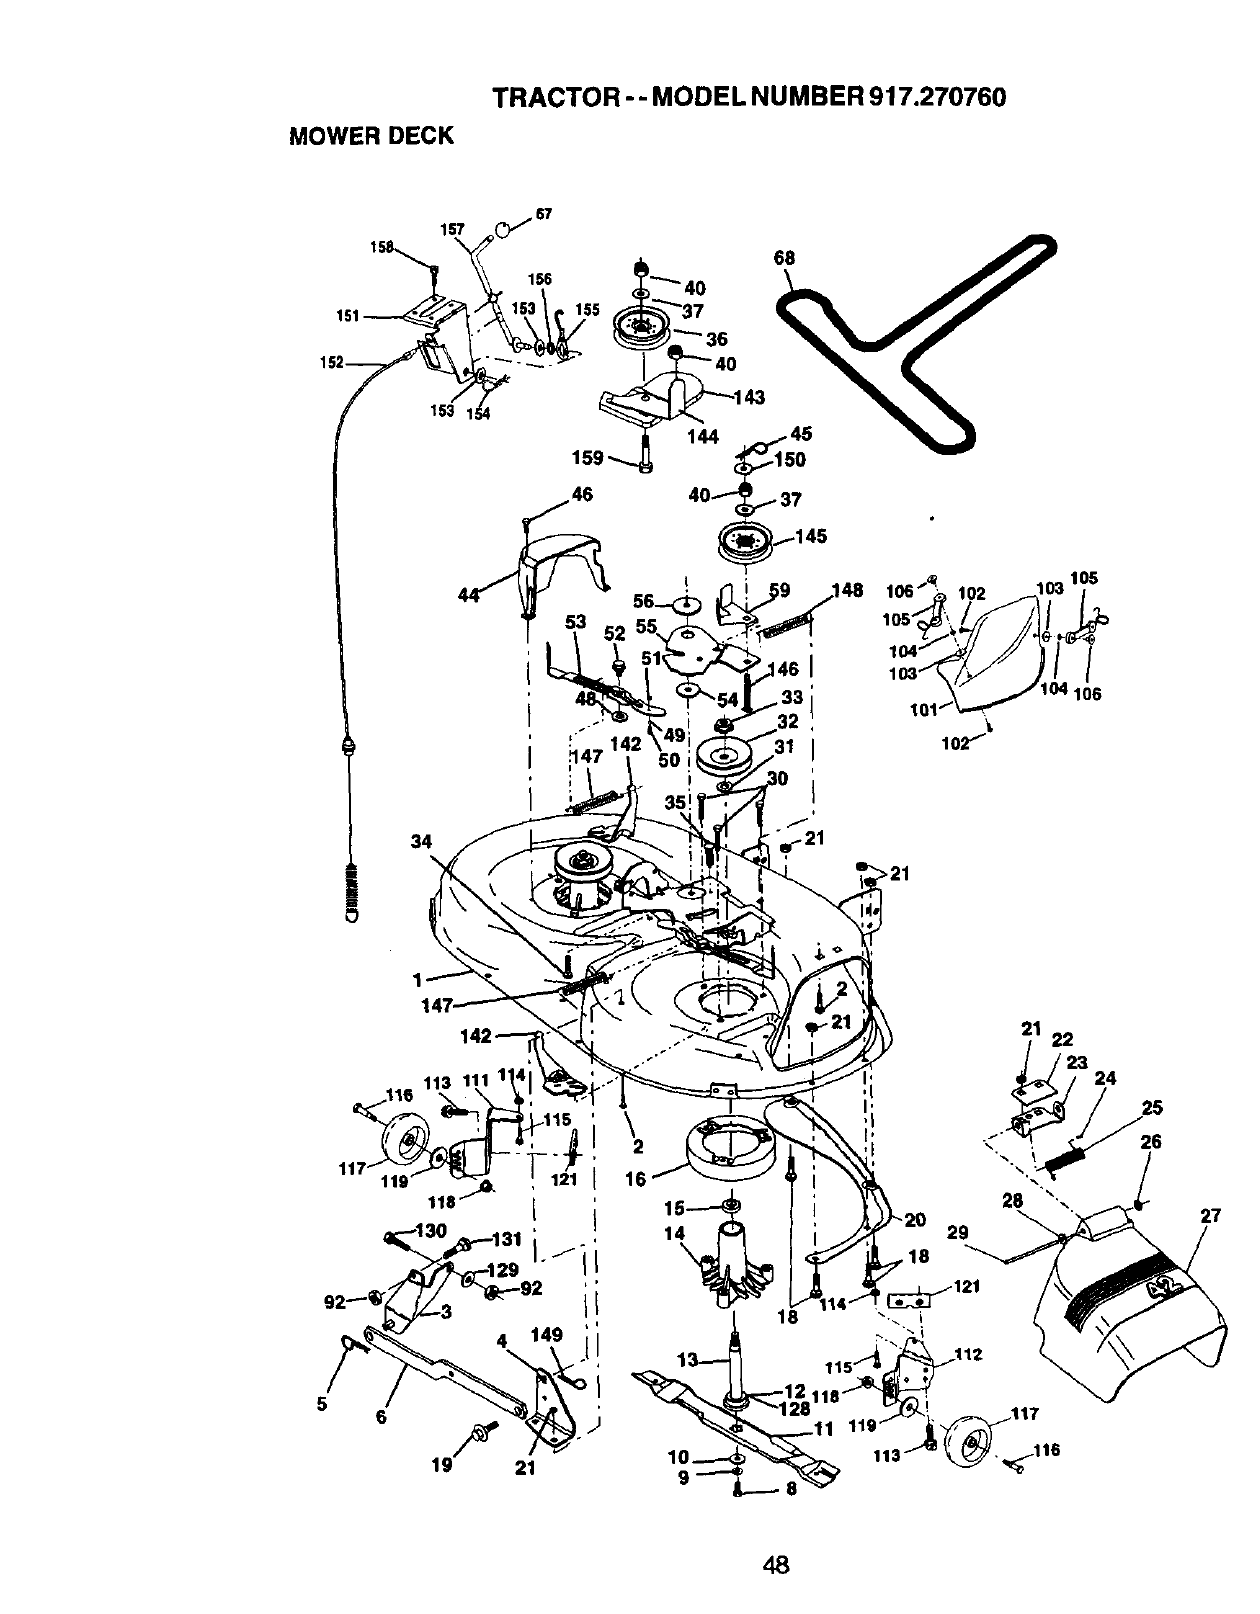 Page 48 of Craftsman Lawn Mower 917.27076 User Guide